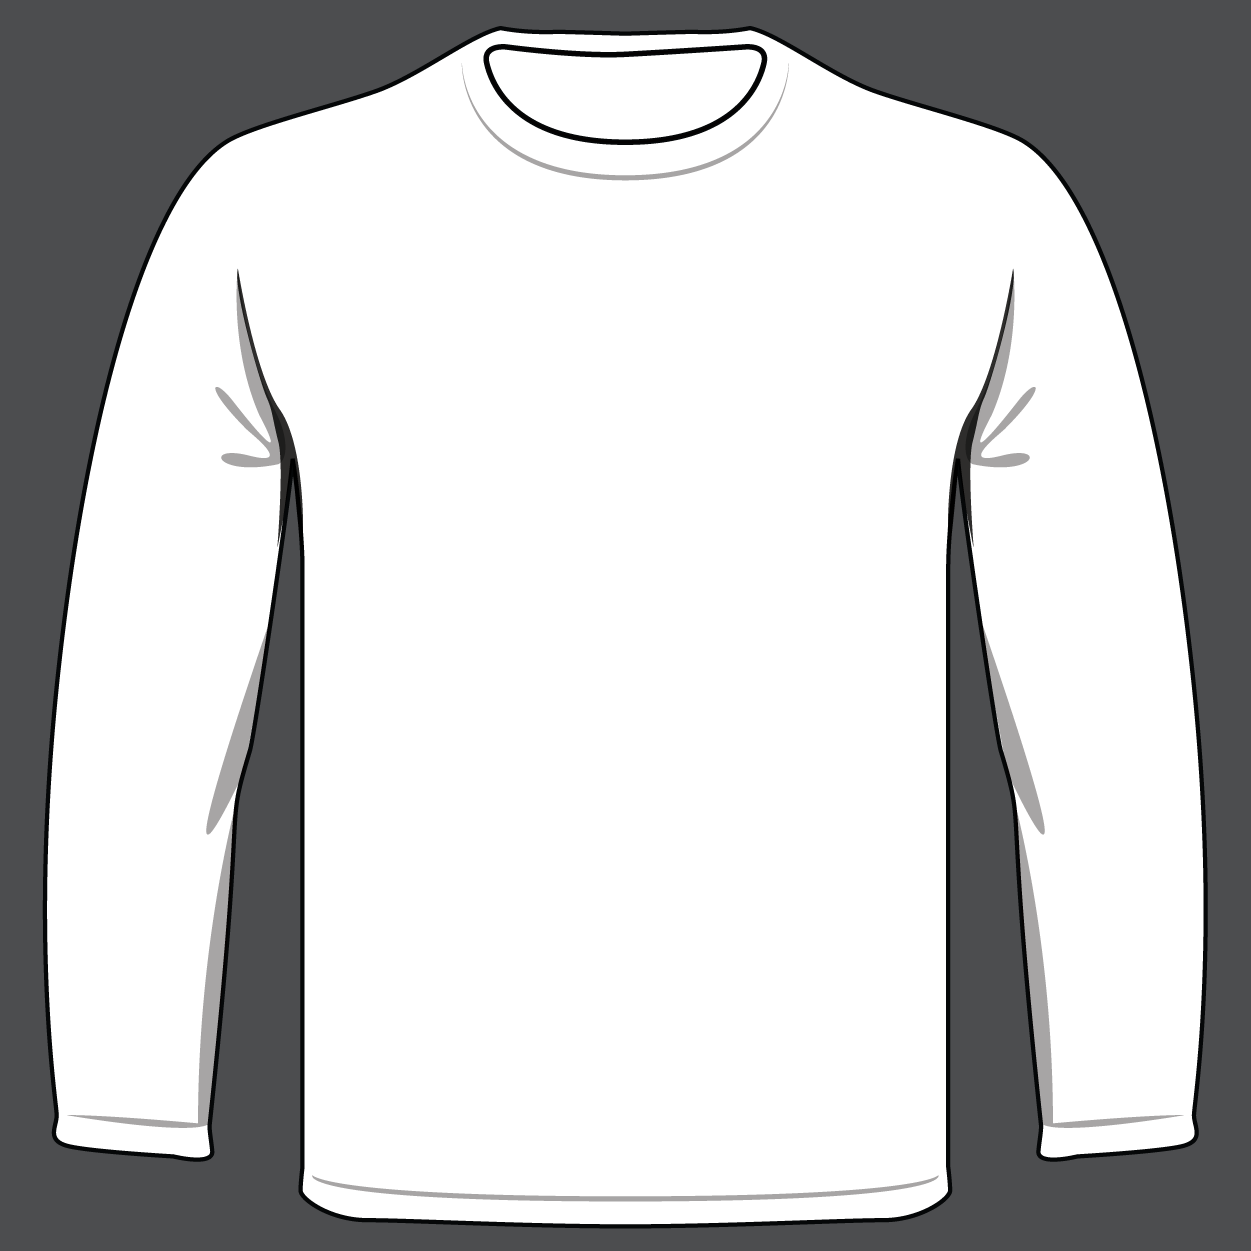 Long Sleeve Performance Shirt - Retail Price:$37.99Team Price 12-23:$31.99Team Price 24+:$27.99Team Price 50+:Contact your Emblem Rep for a custom quoteFabric:Light InterlockSizes:YXS, YS, YM, YL, XS, S, M, L, XL, XXL, XXXLOptions:N/A